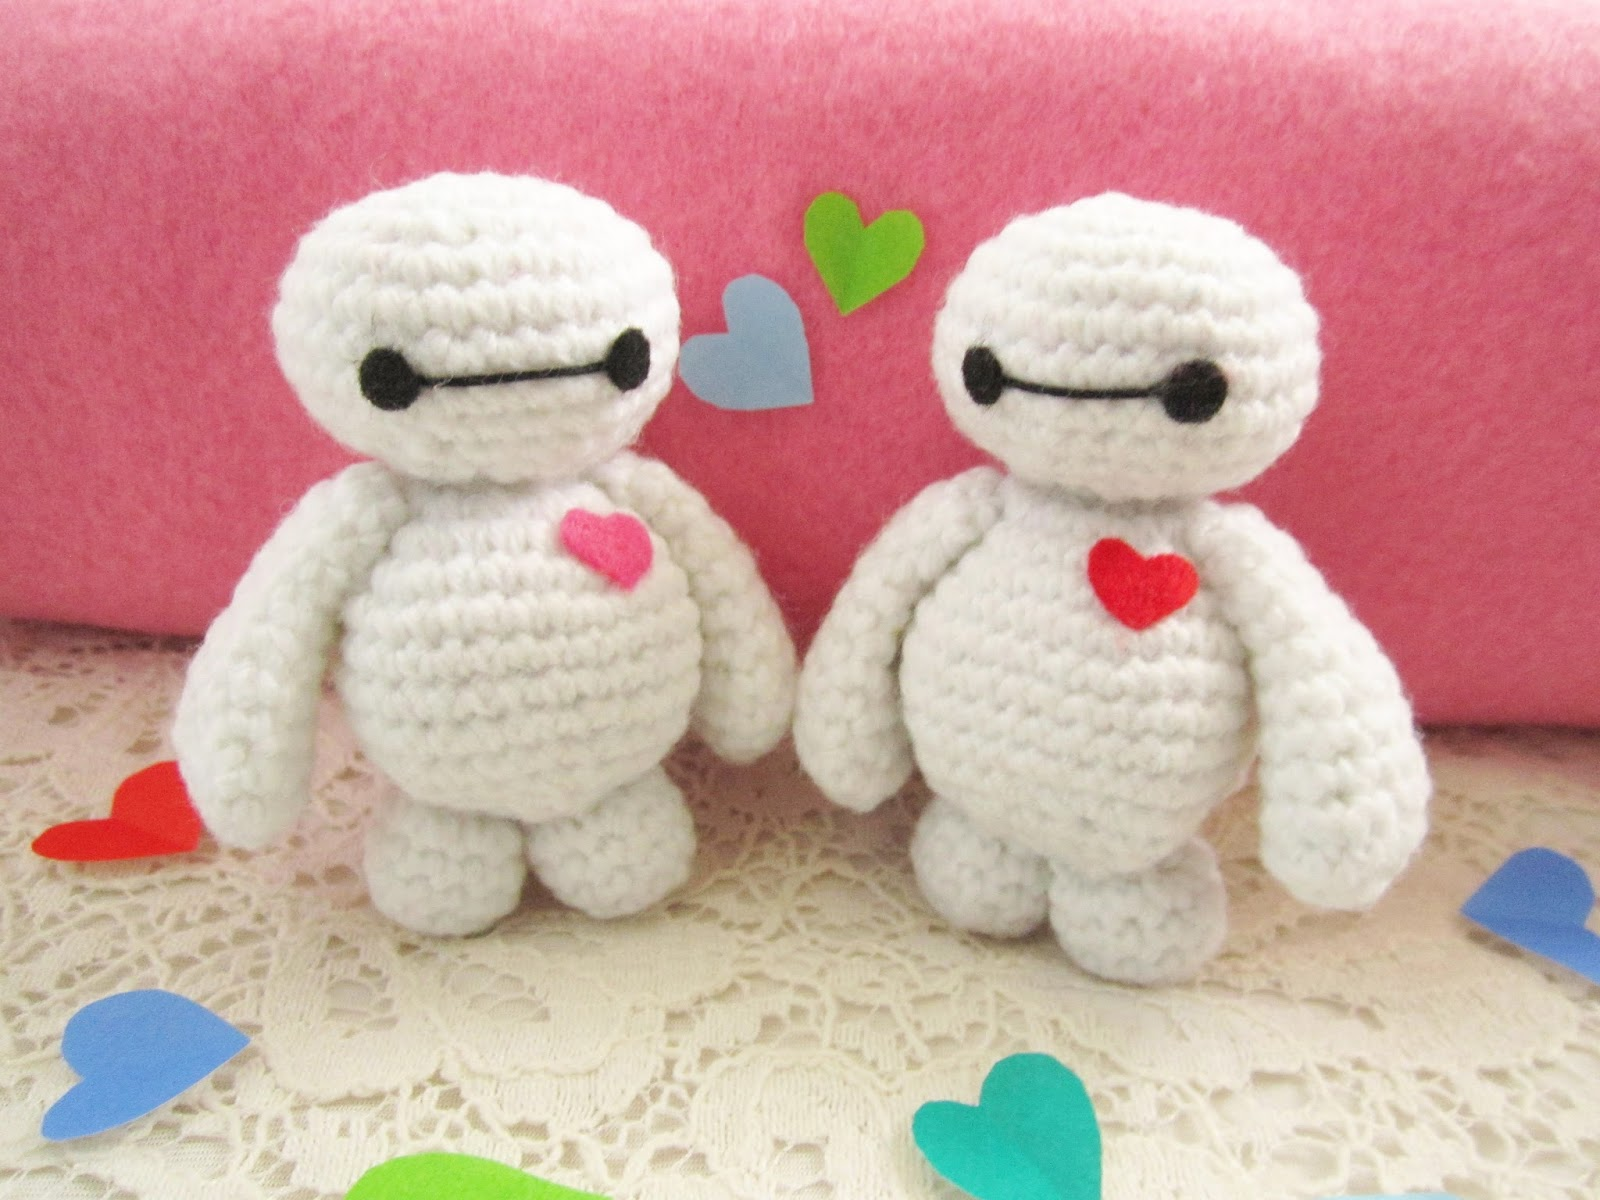 Baymax amigurumi pattern - A little love everyday!